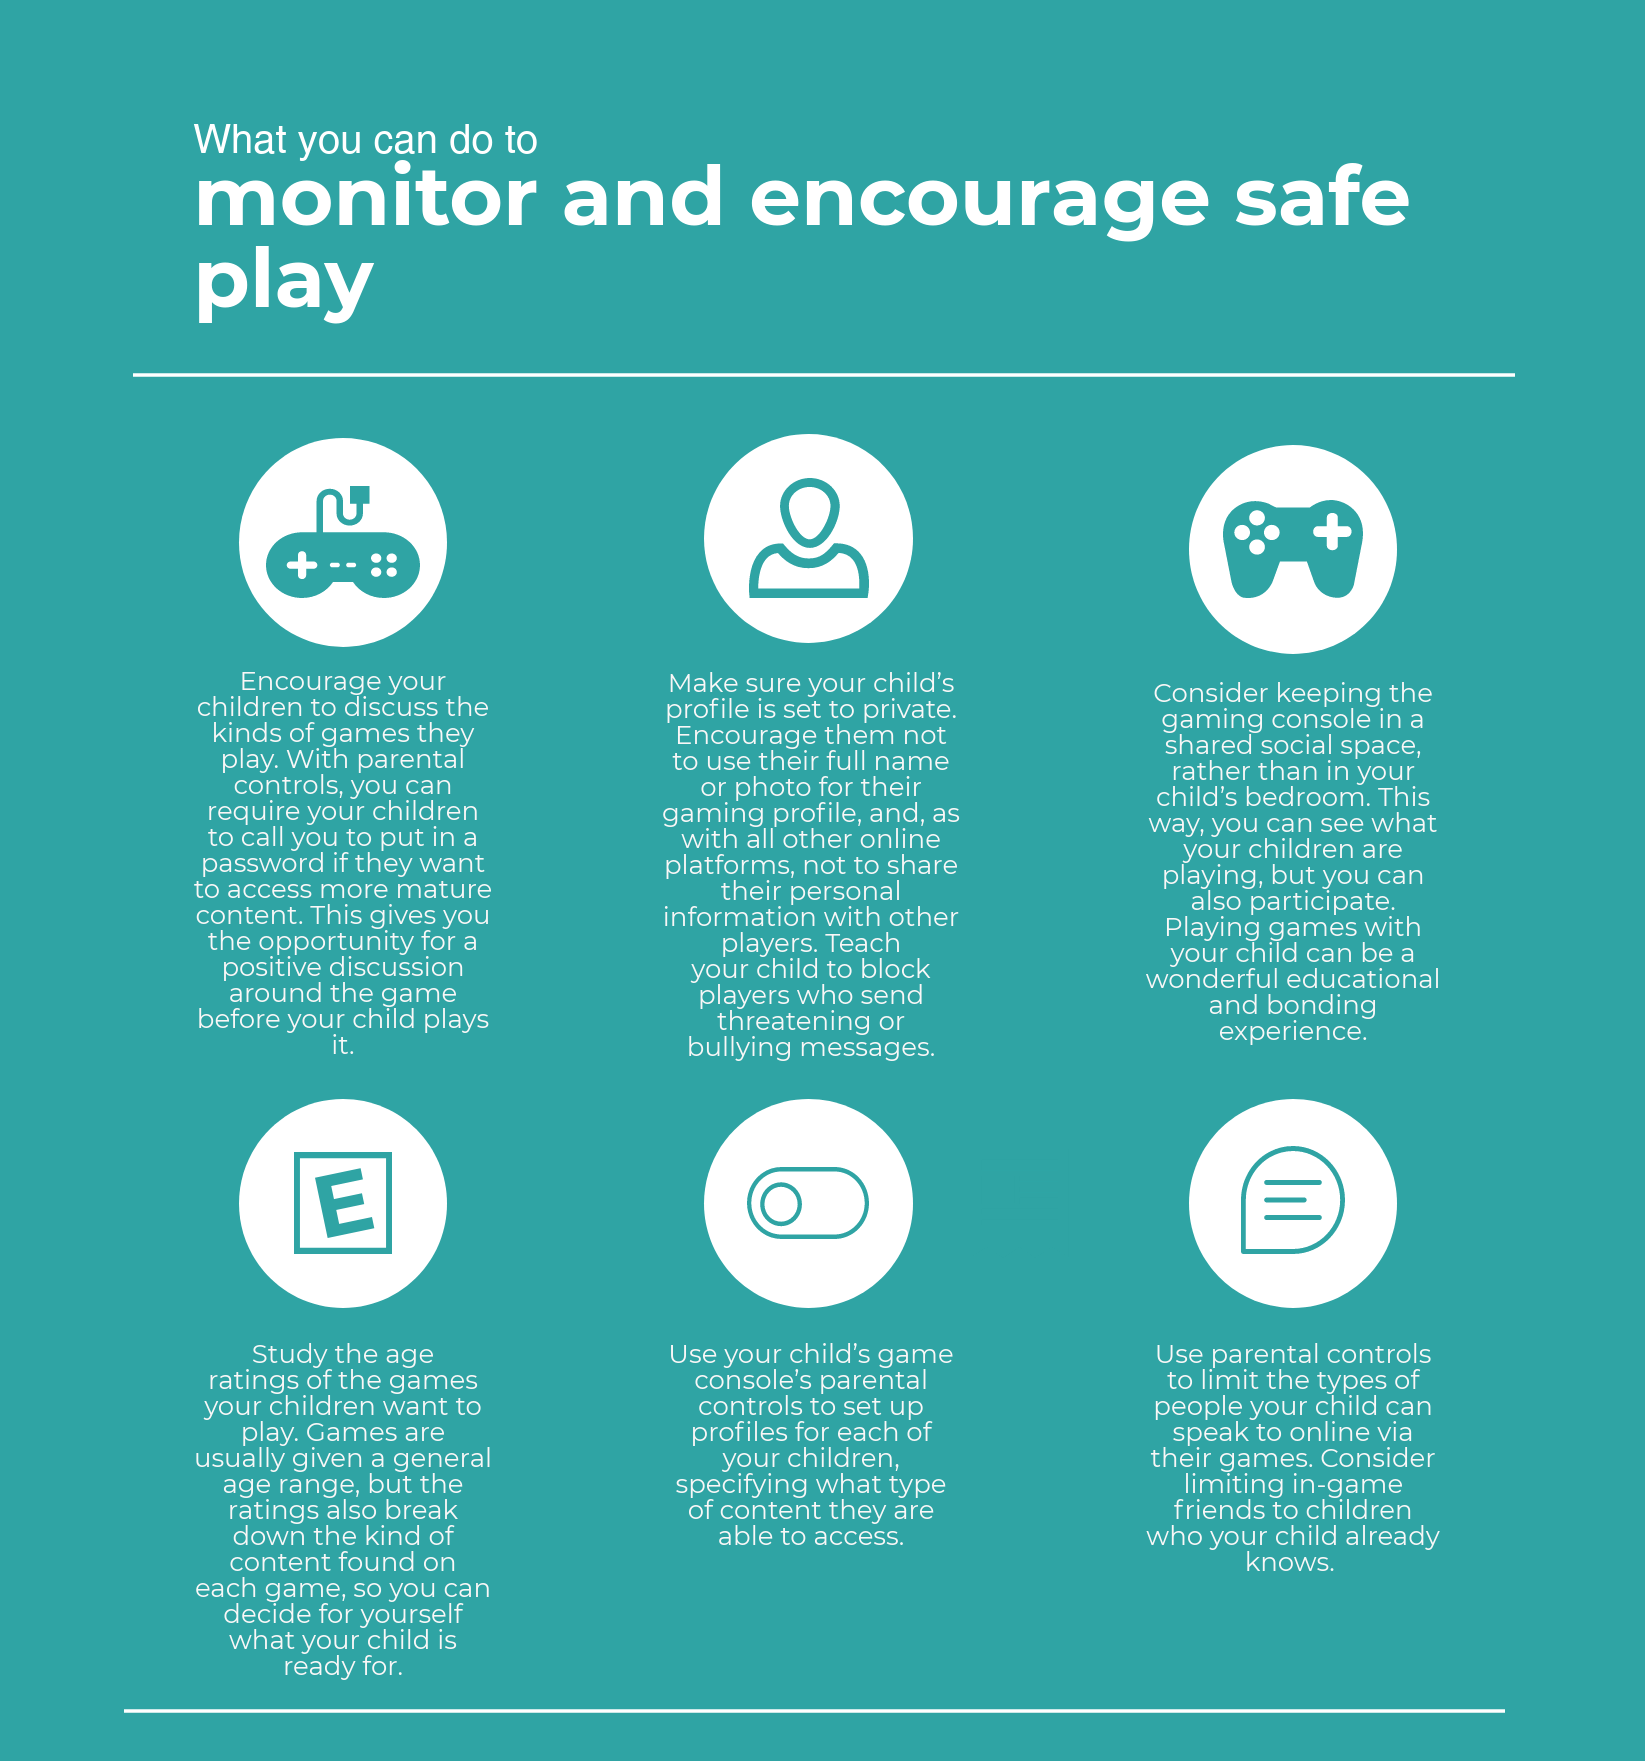 Monitor and encourage safe play infographic